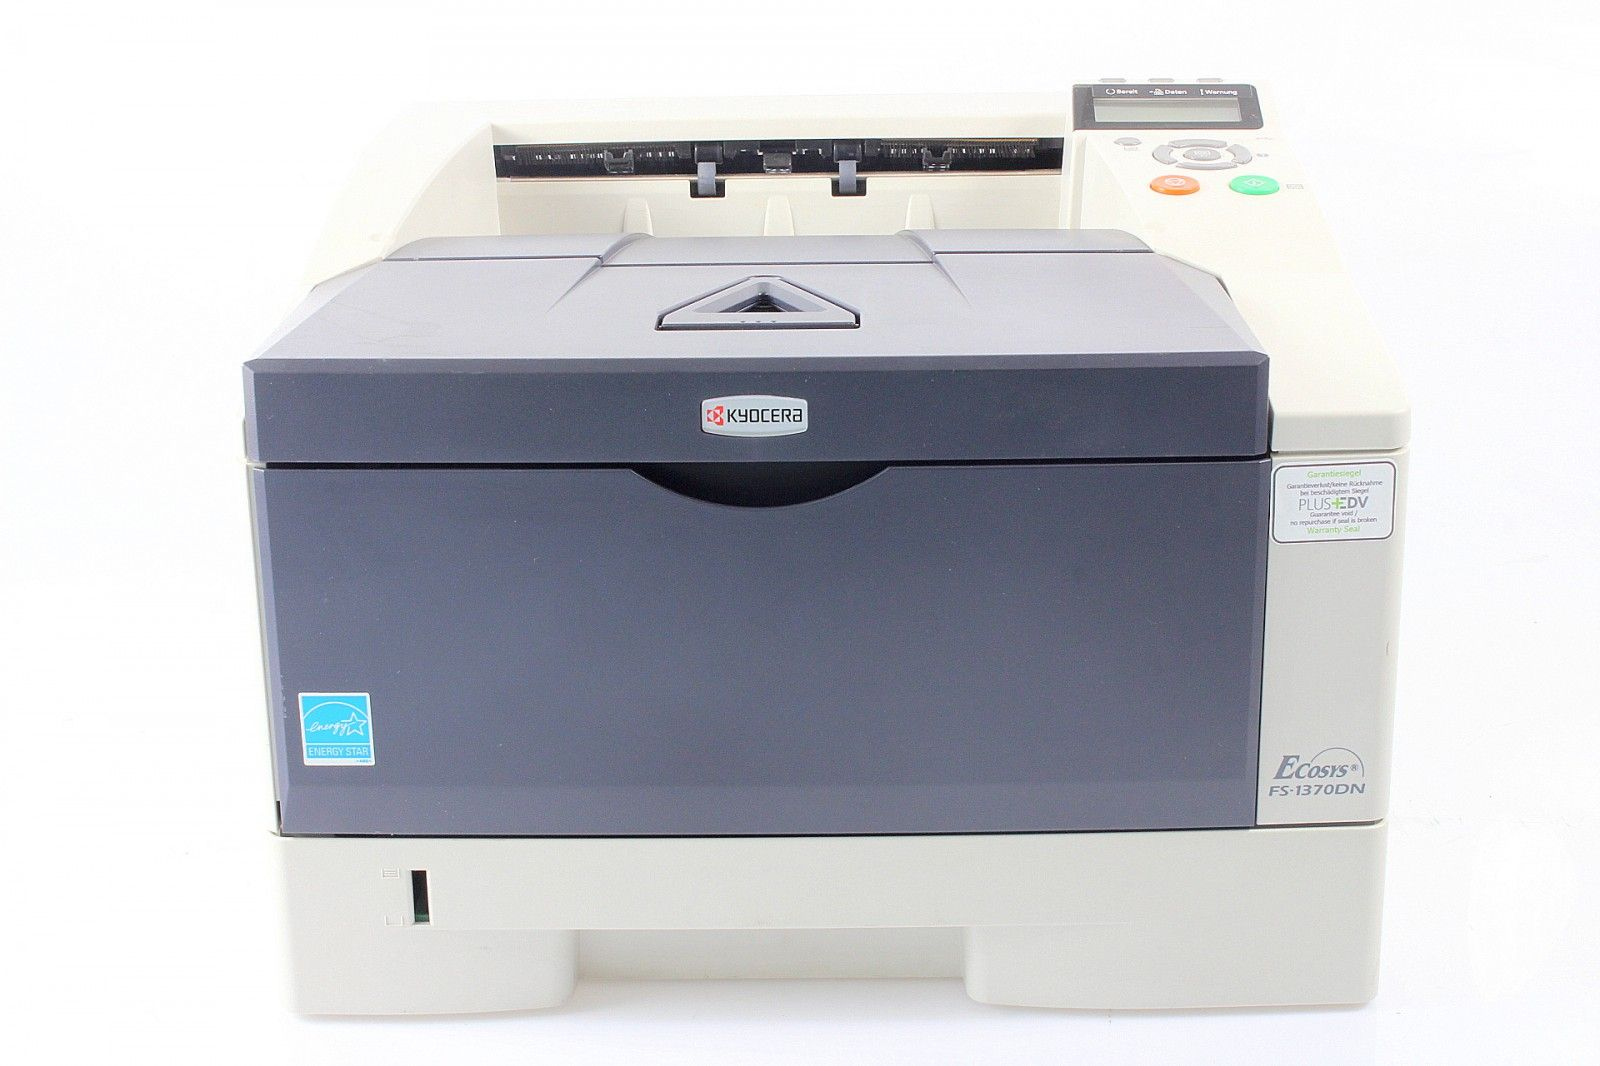 If you connect this printer to a Windows PC, follow the